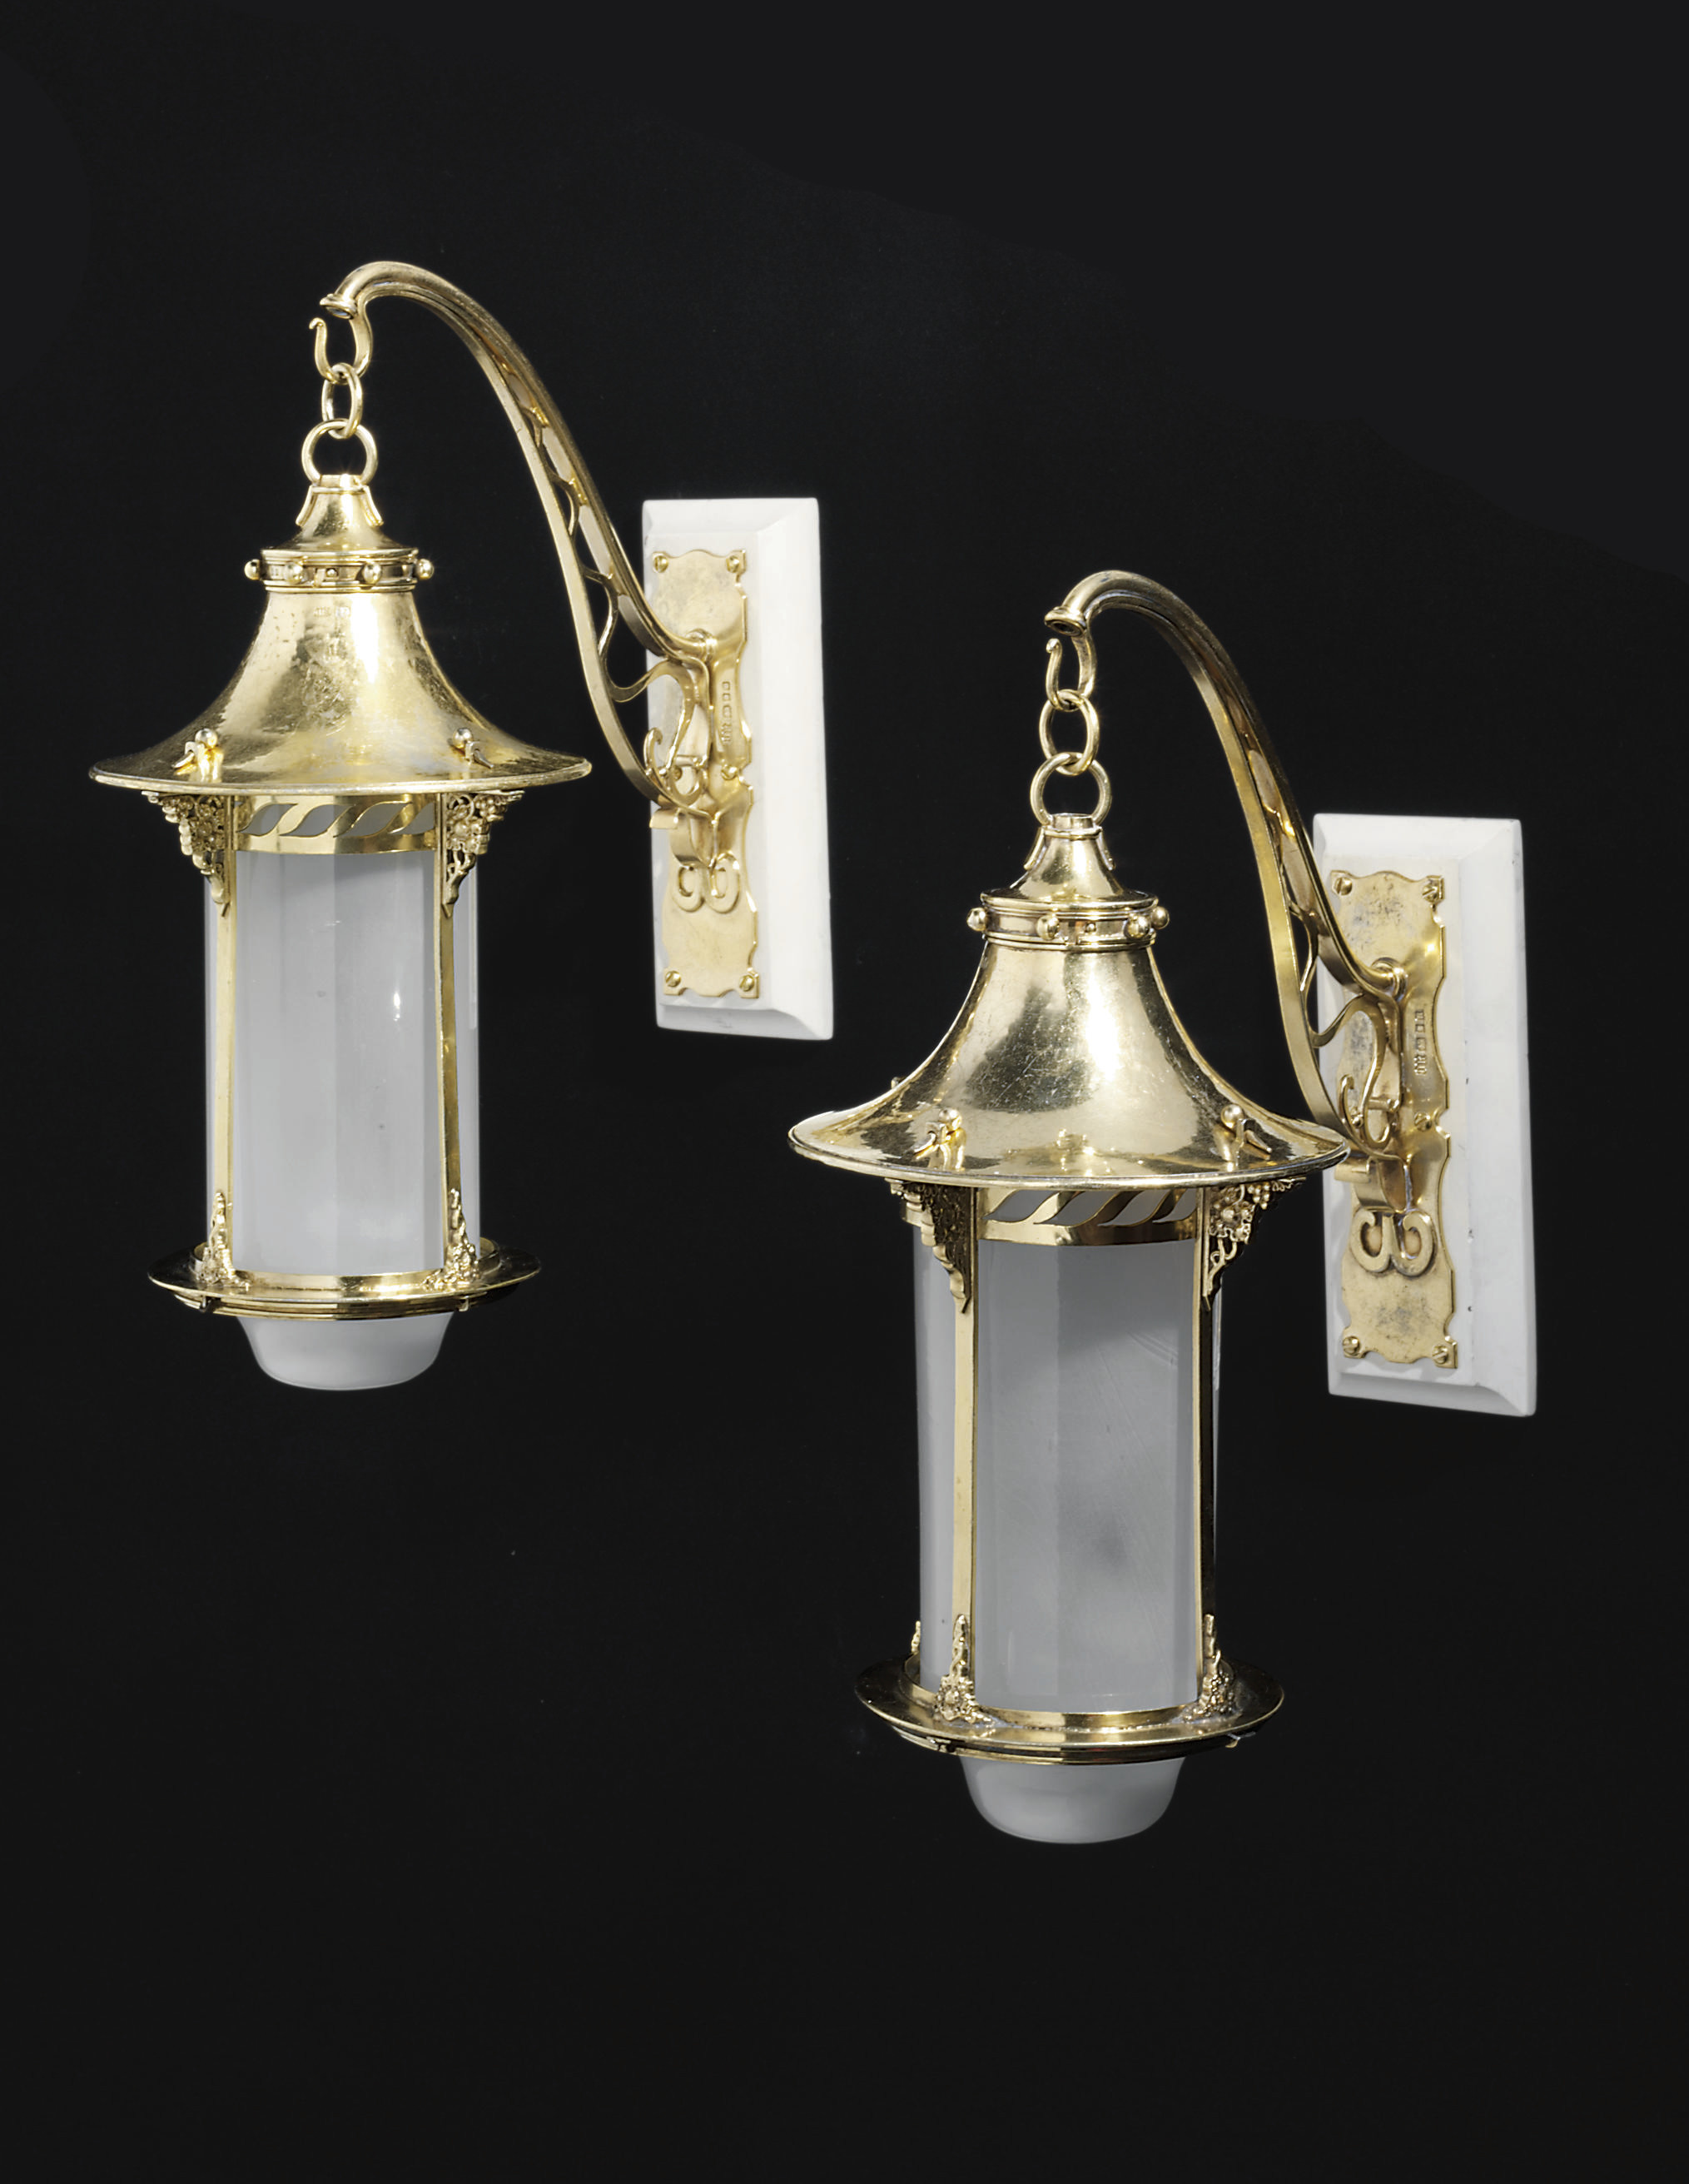 AN IMPORTANT PAIR OF GEORGE V SILVER-GILT LANTERNS